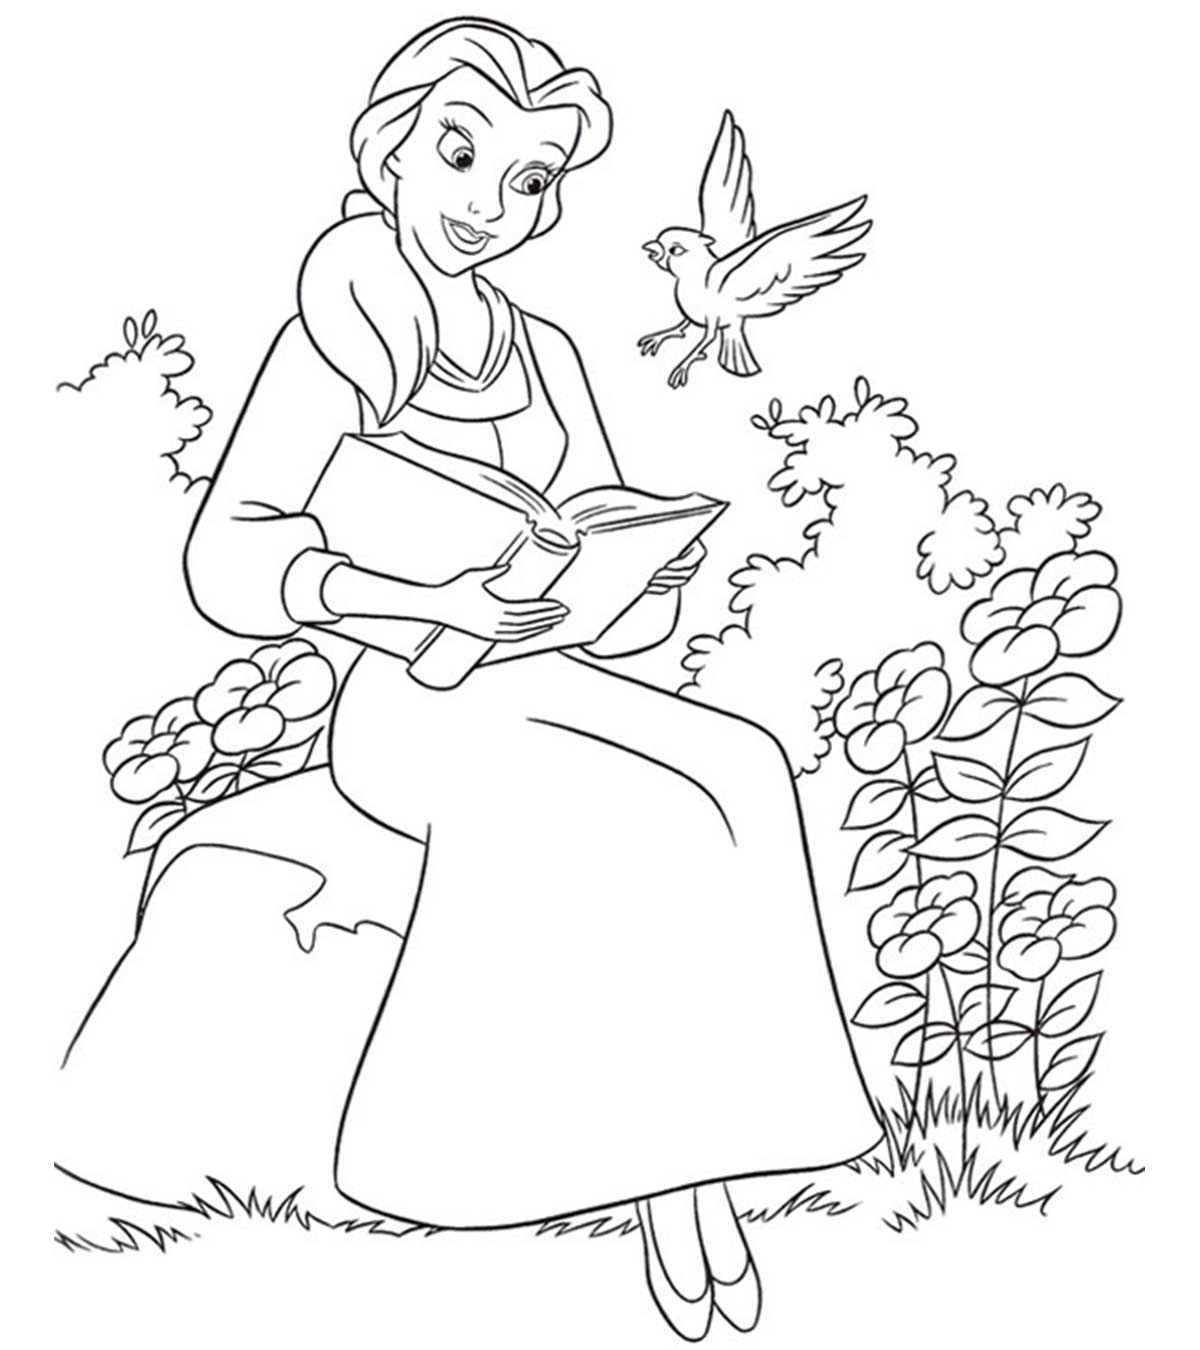 Cartoon Coloring Pages - MomJunctionBeauty And The Beast Coloring Page Beast